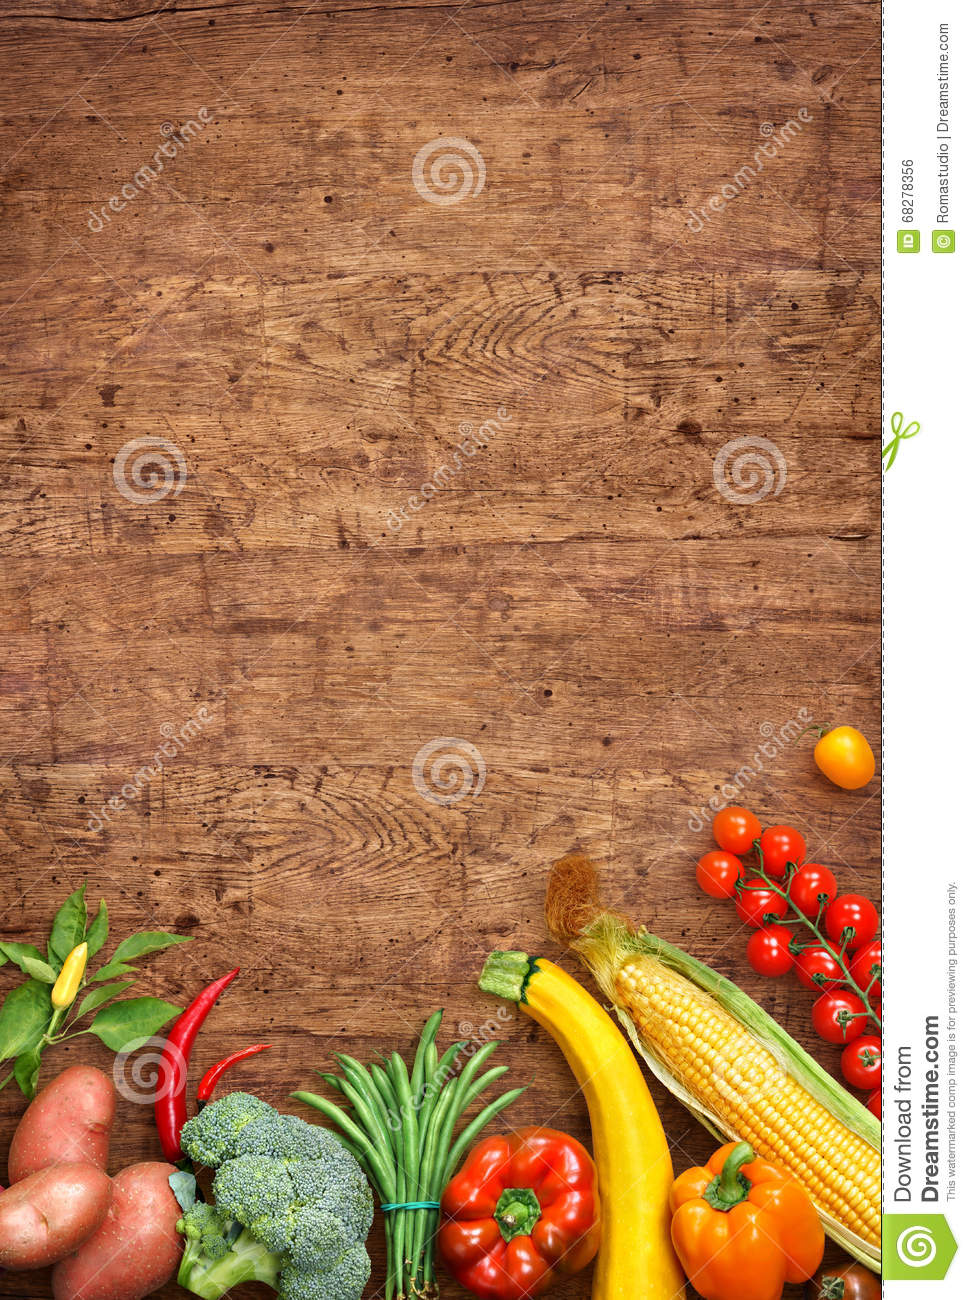 Food background studio photo of different fruits and vegetables - Background Different Food Fruits Healthy High Old Photo Product Resolution Studio Table Vegetables